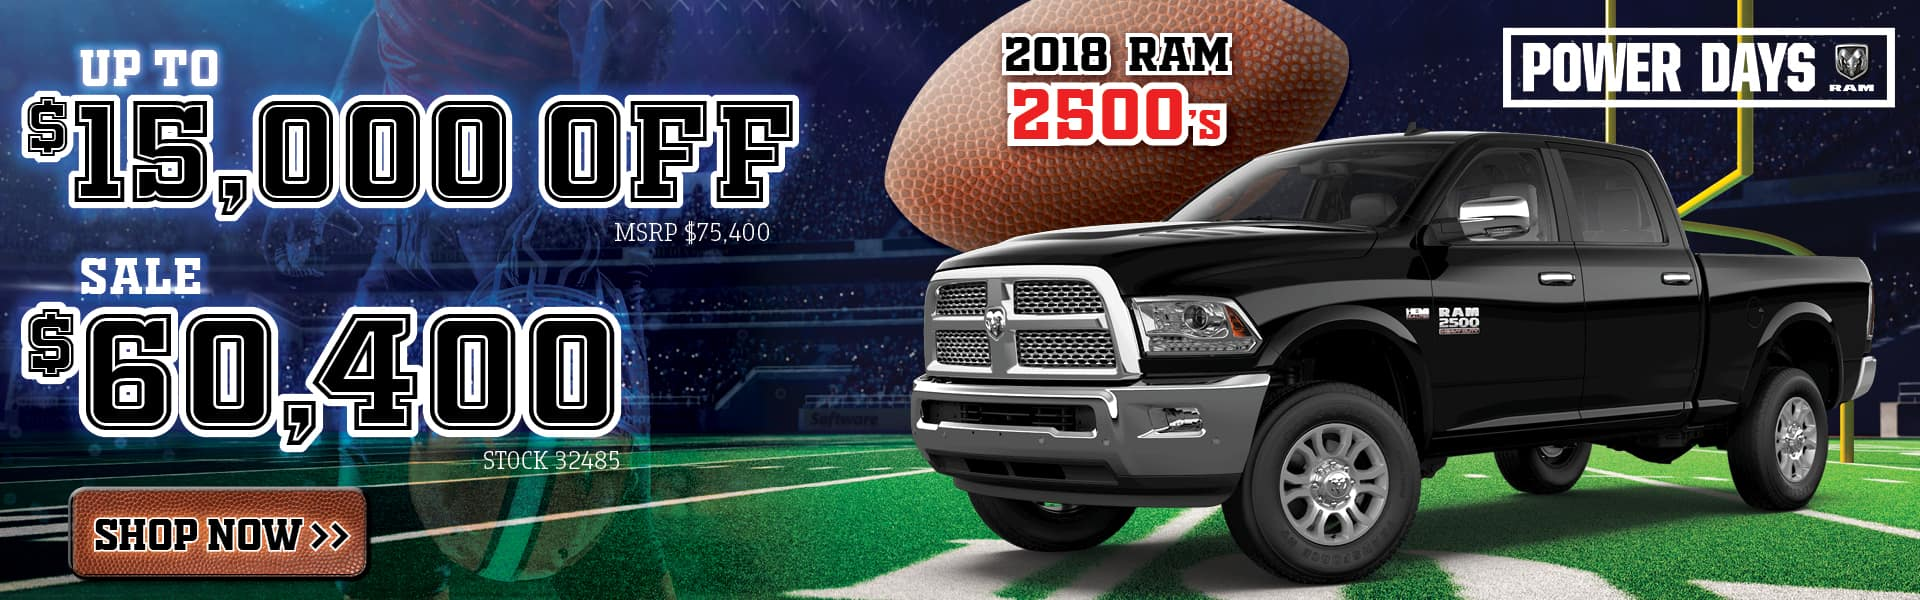 RAM 2500 Truck Special in Roswell, GA